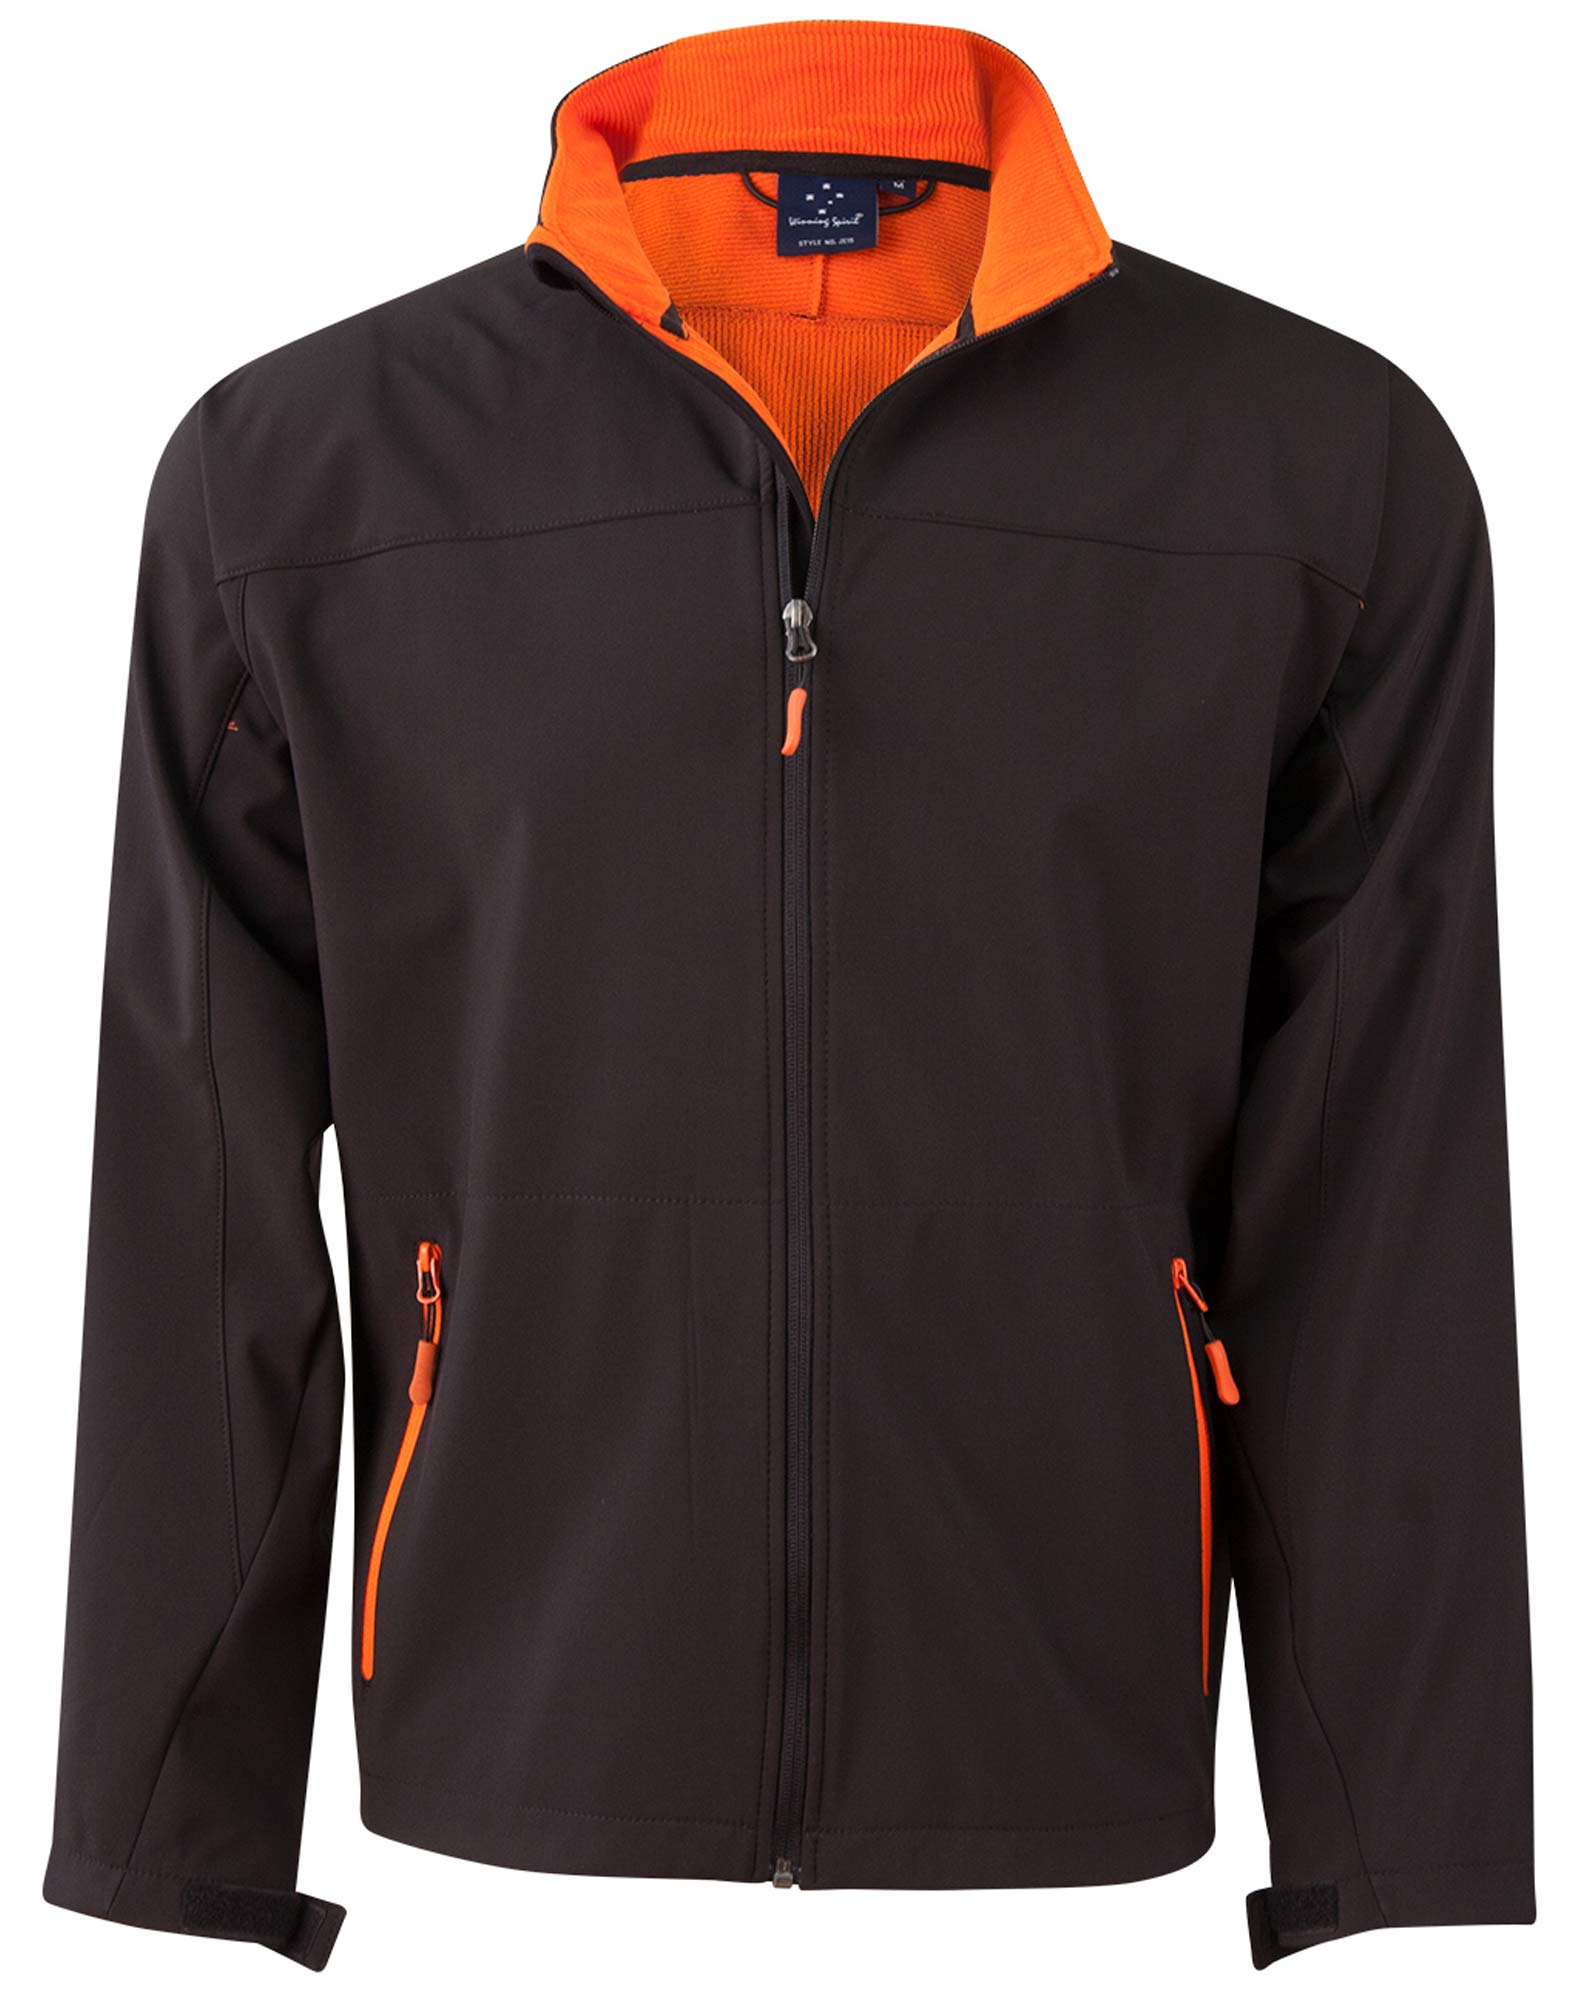 4b5b5bb4117e6 WinningSpirit JK15-Rosewall Mens Softshell Jacket - $42.50 : TAS ...